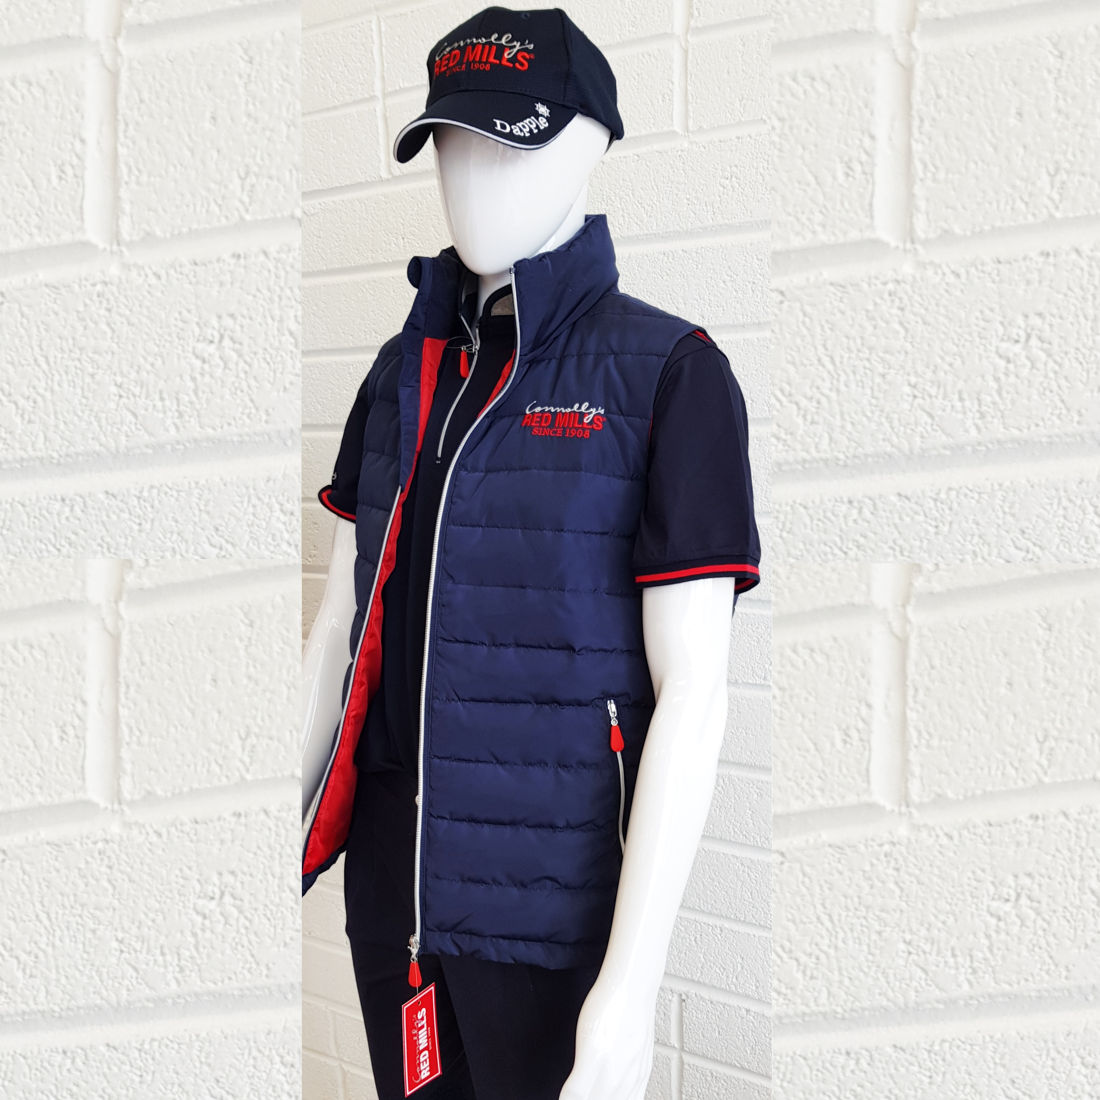 RED MILLS mens padded bodywarmer - RedMillsStore.ie